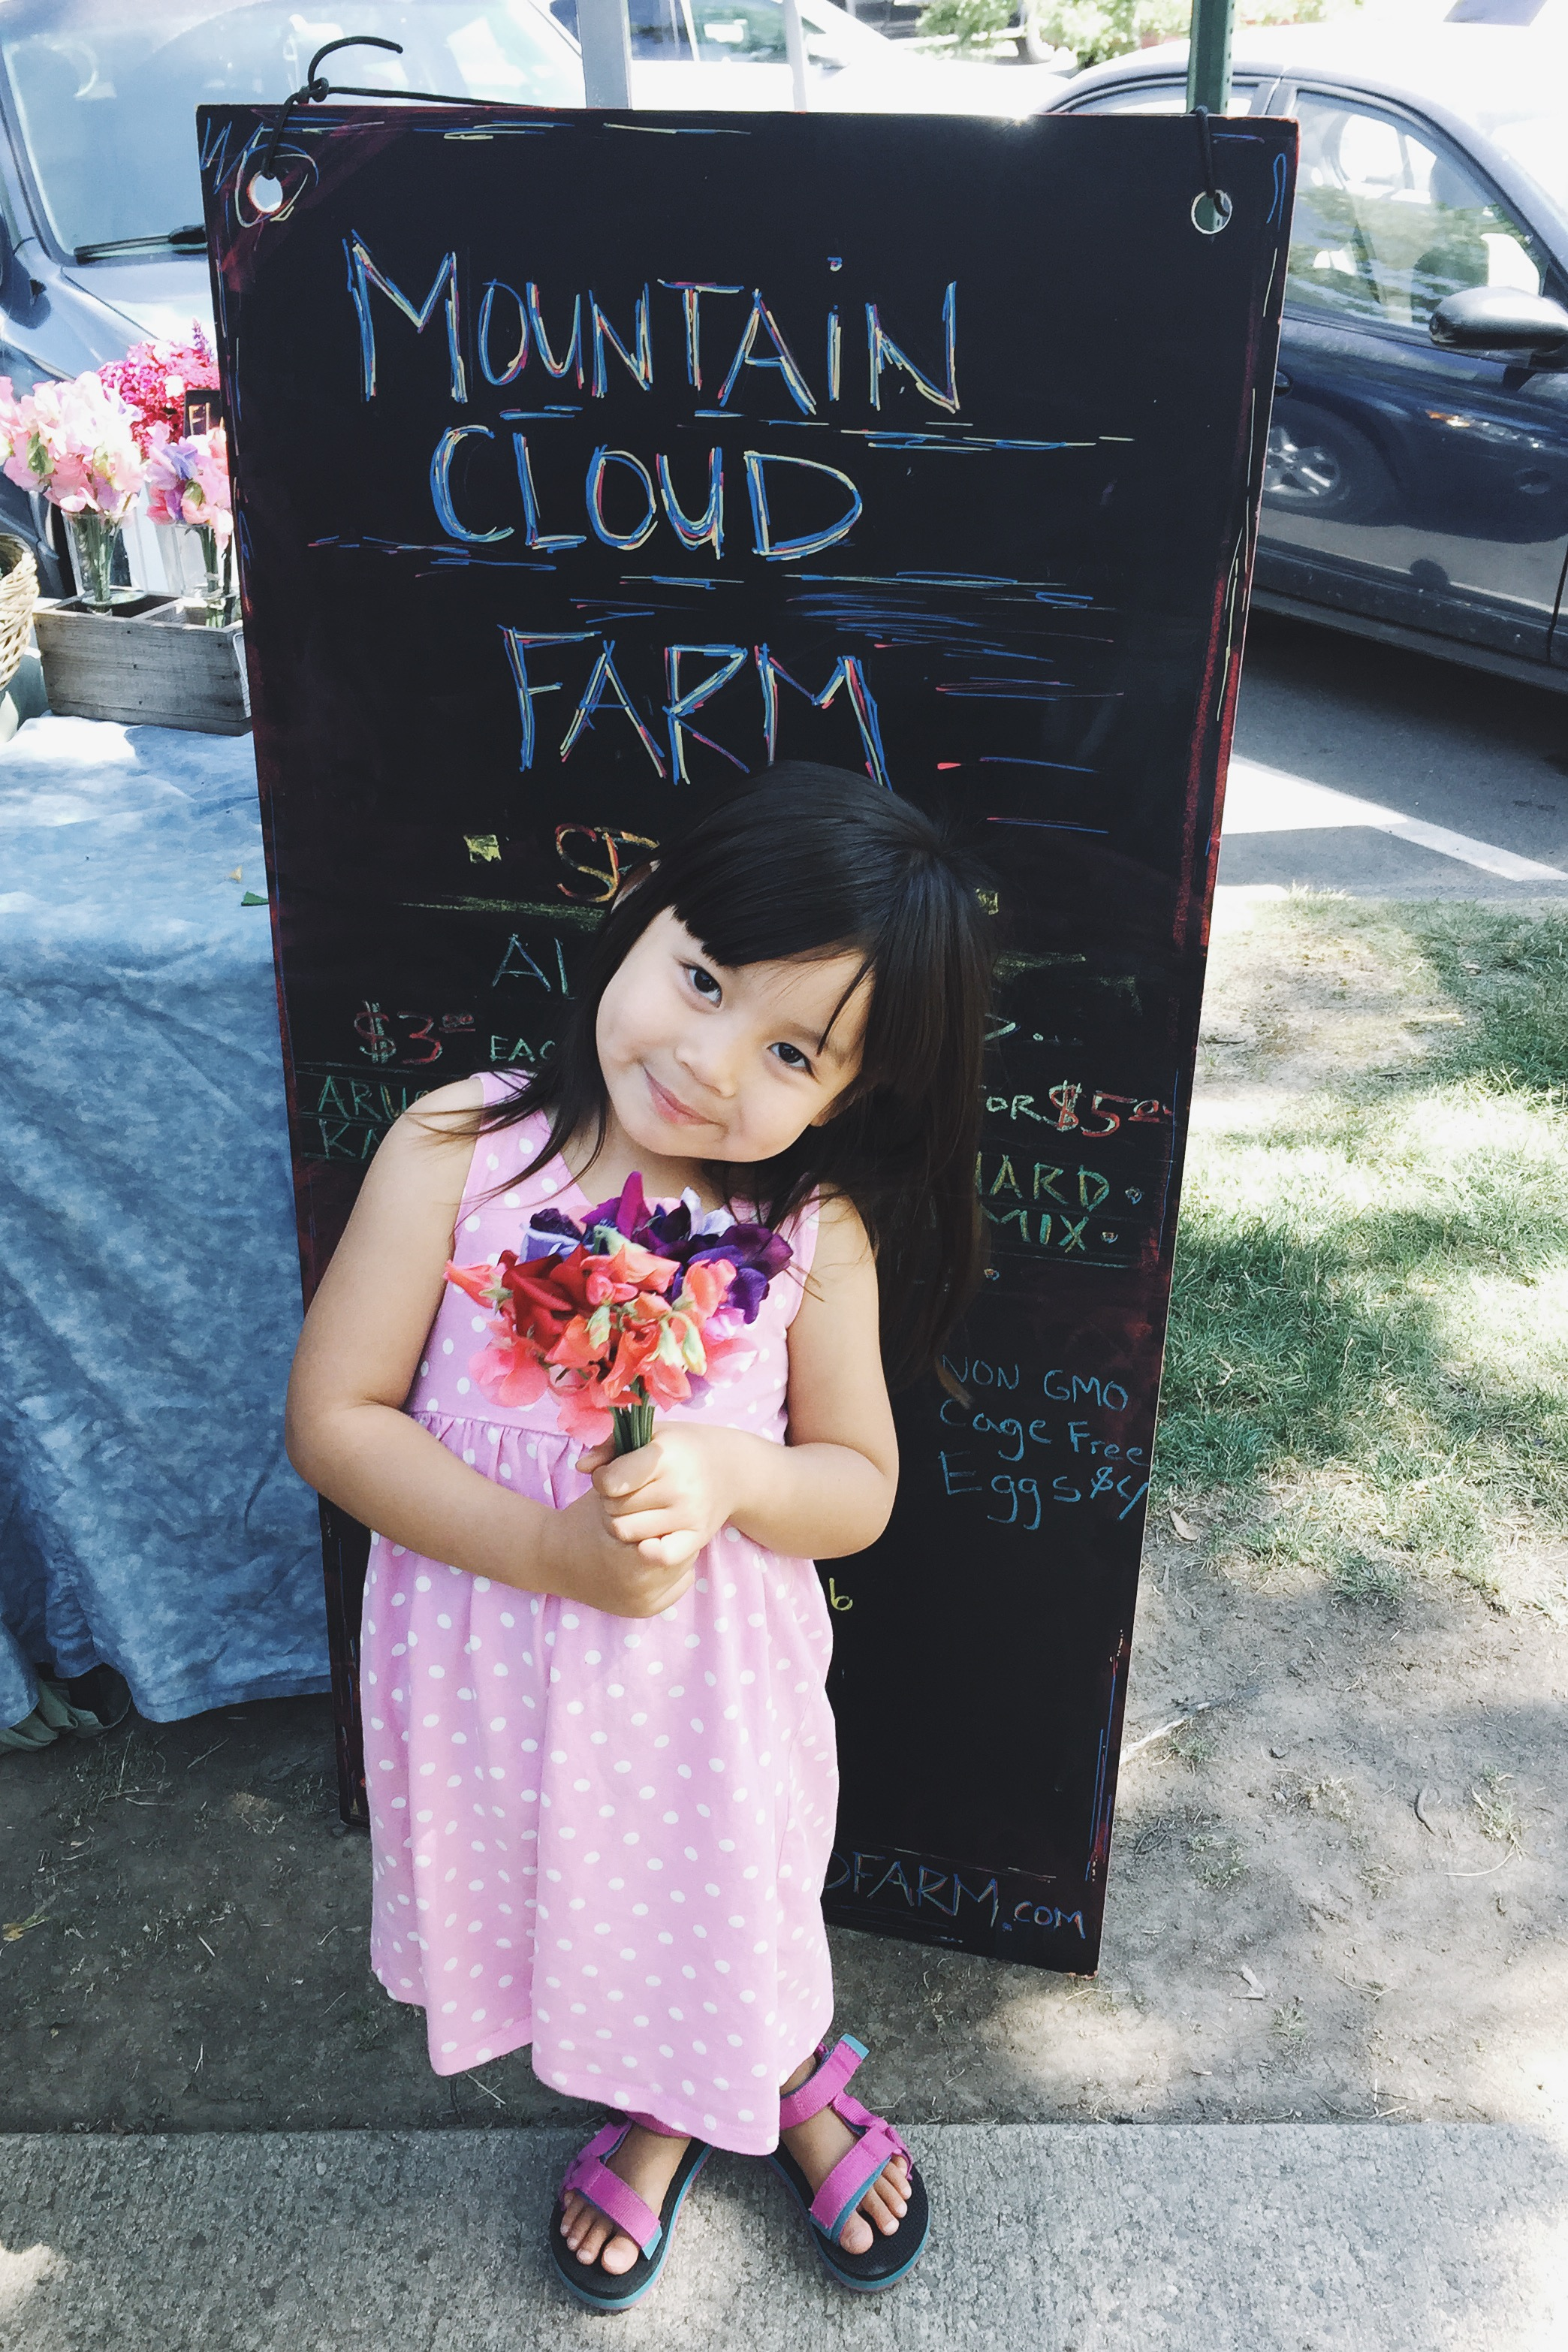 We love to visit local farmer's markets.